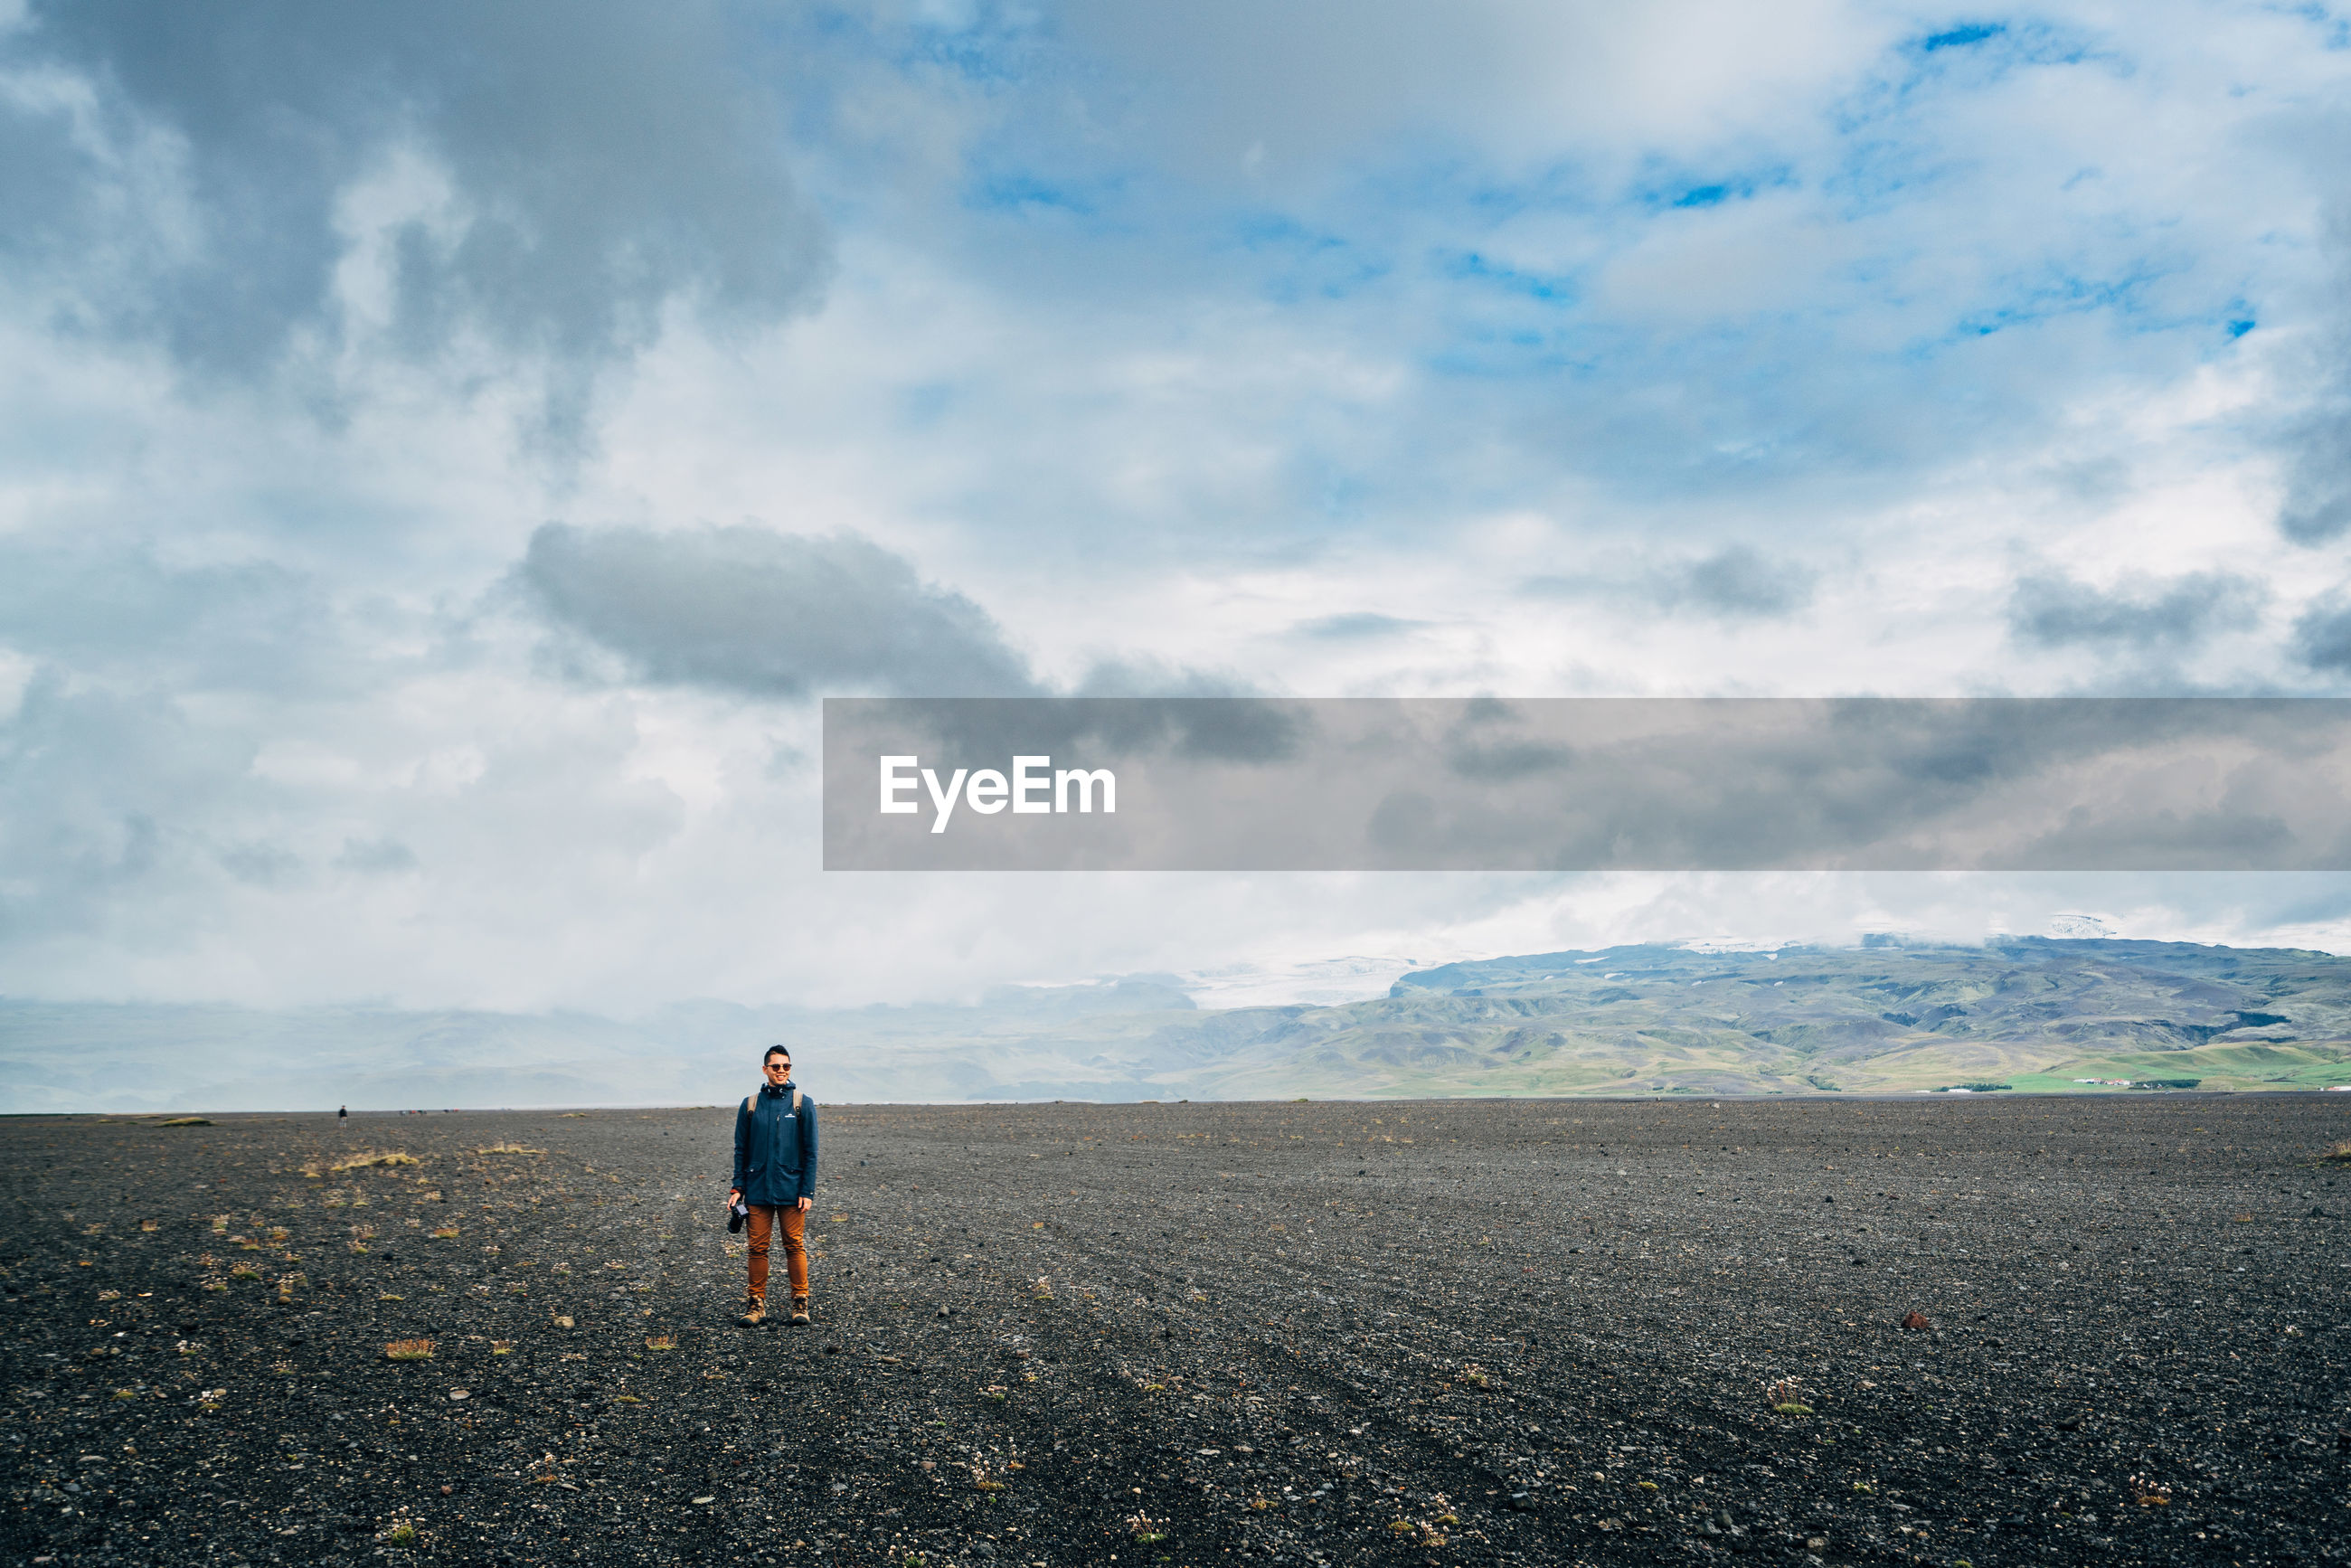 Man with camera standing on field against cloudy sky